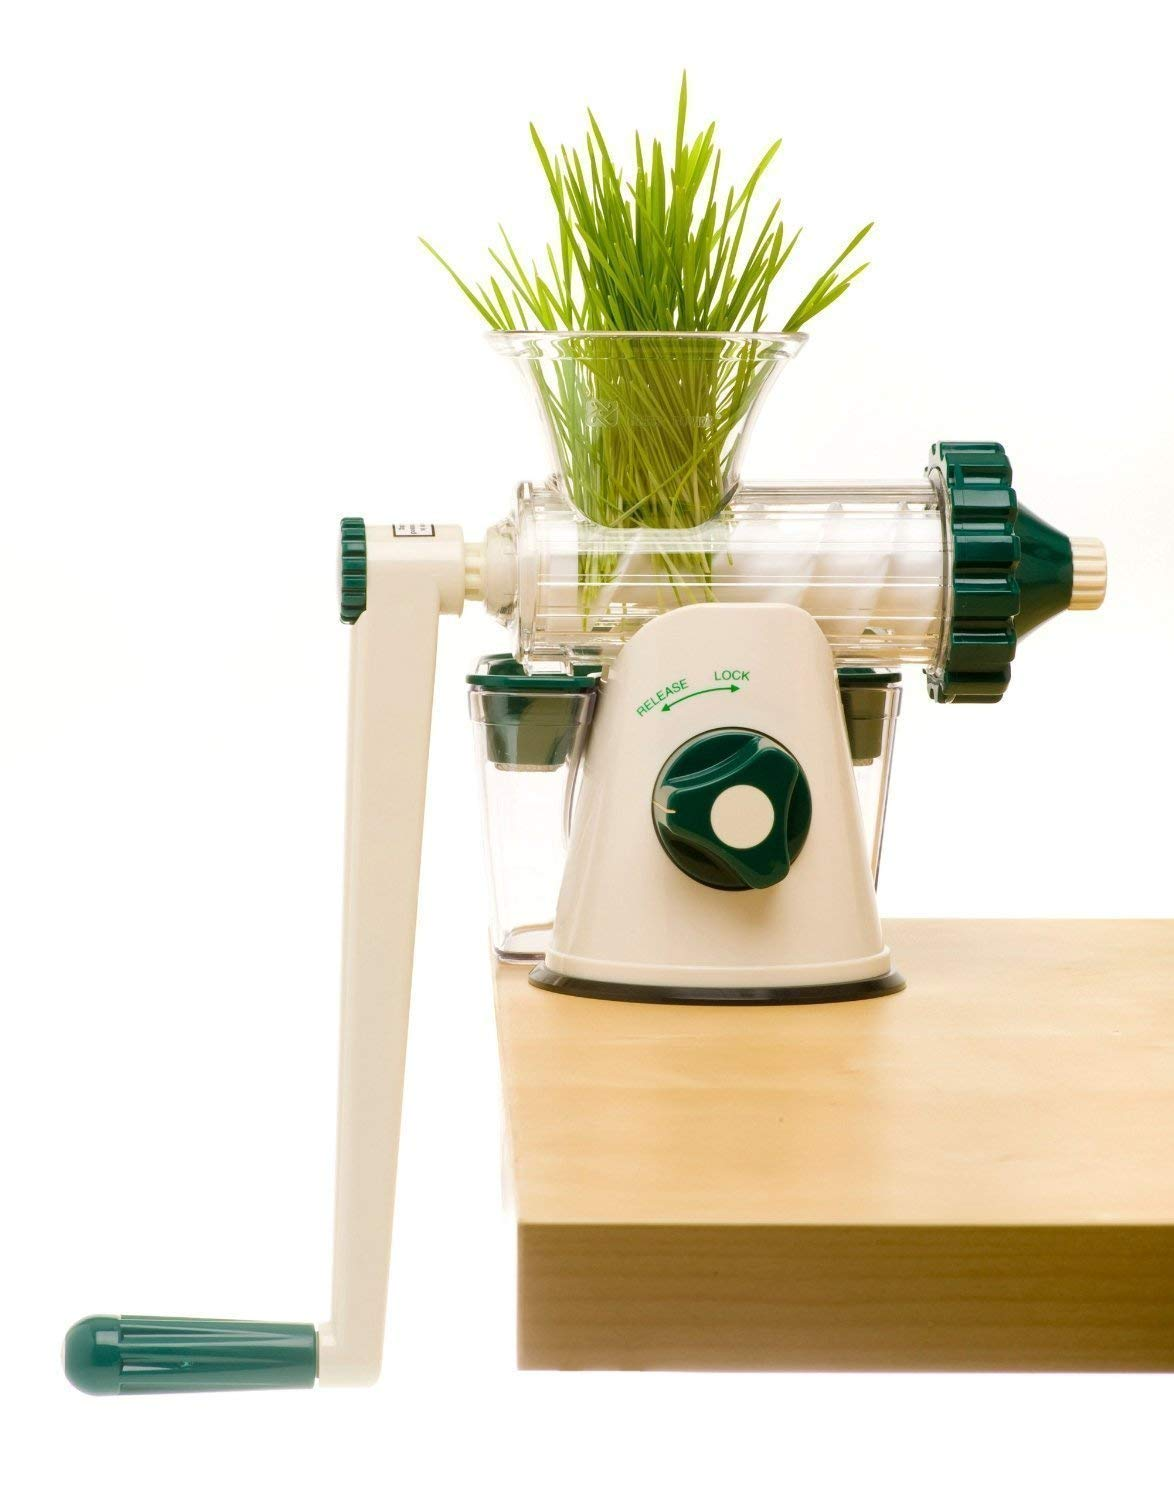 The Original Healthy Juicer (Lexen GP27) - Manual Juicer - Celery, Wheatgrass, Kale, Spinach, Parsley and any other Leafy Green! Featuring a masticating live-enzyme cold press process! by Healthy Juicer